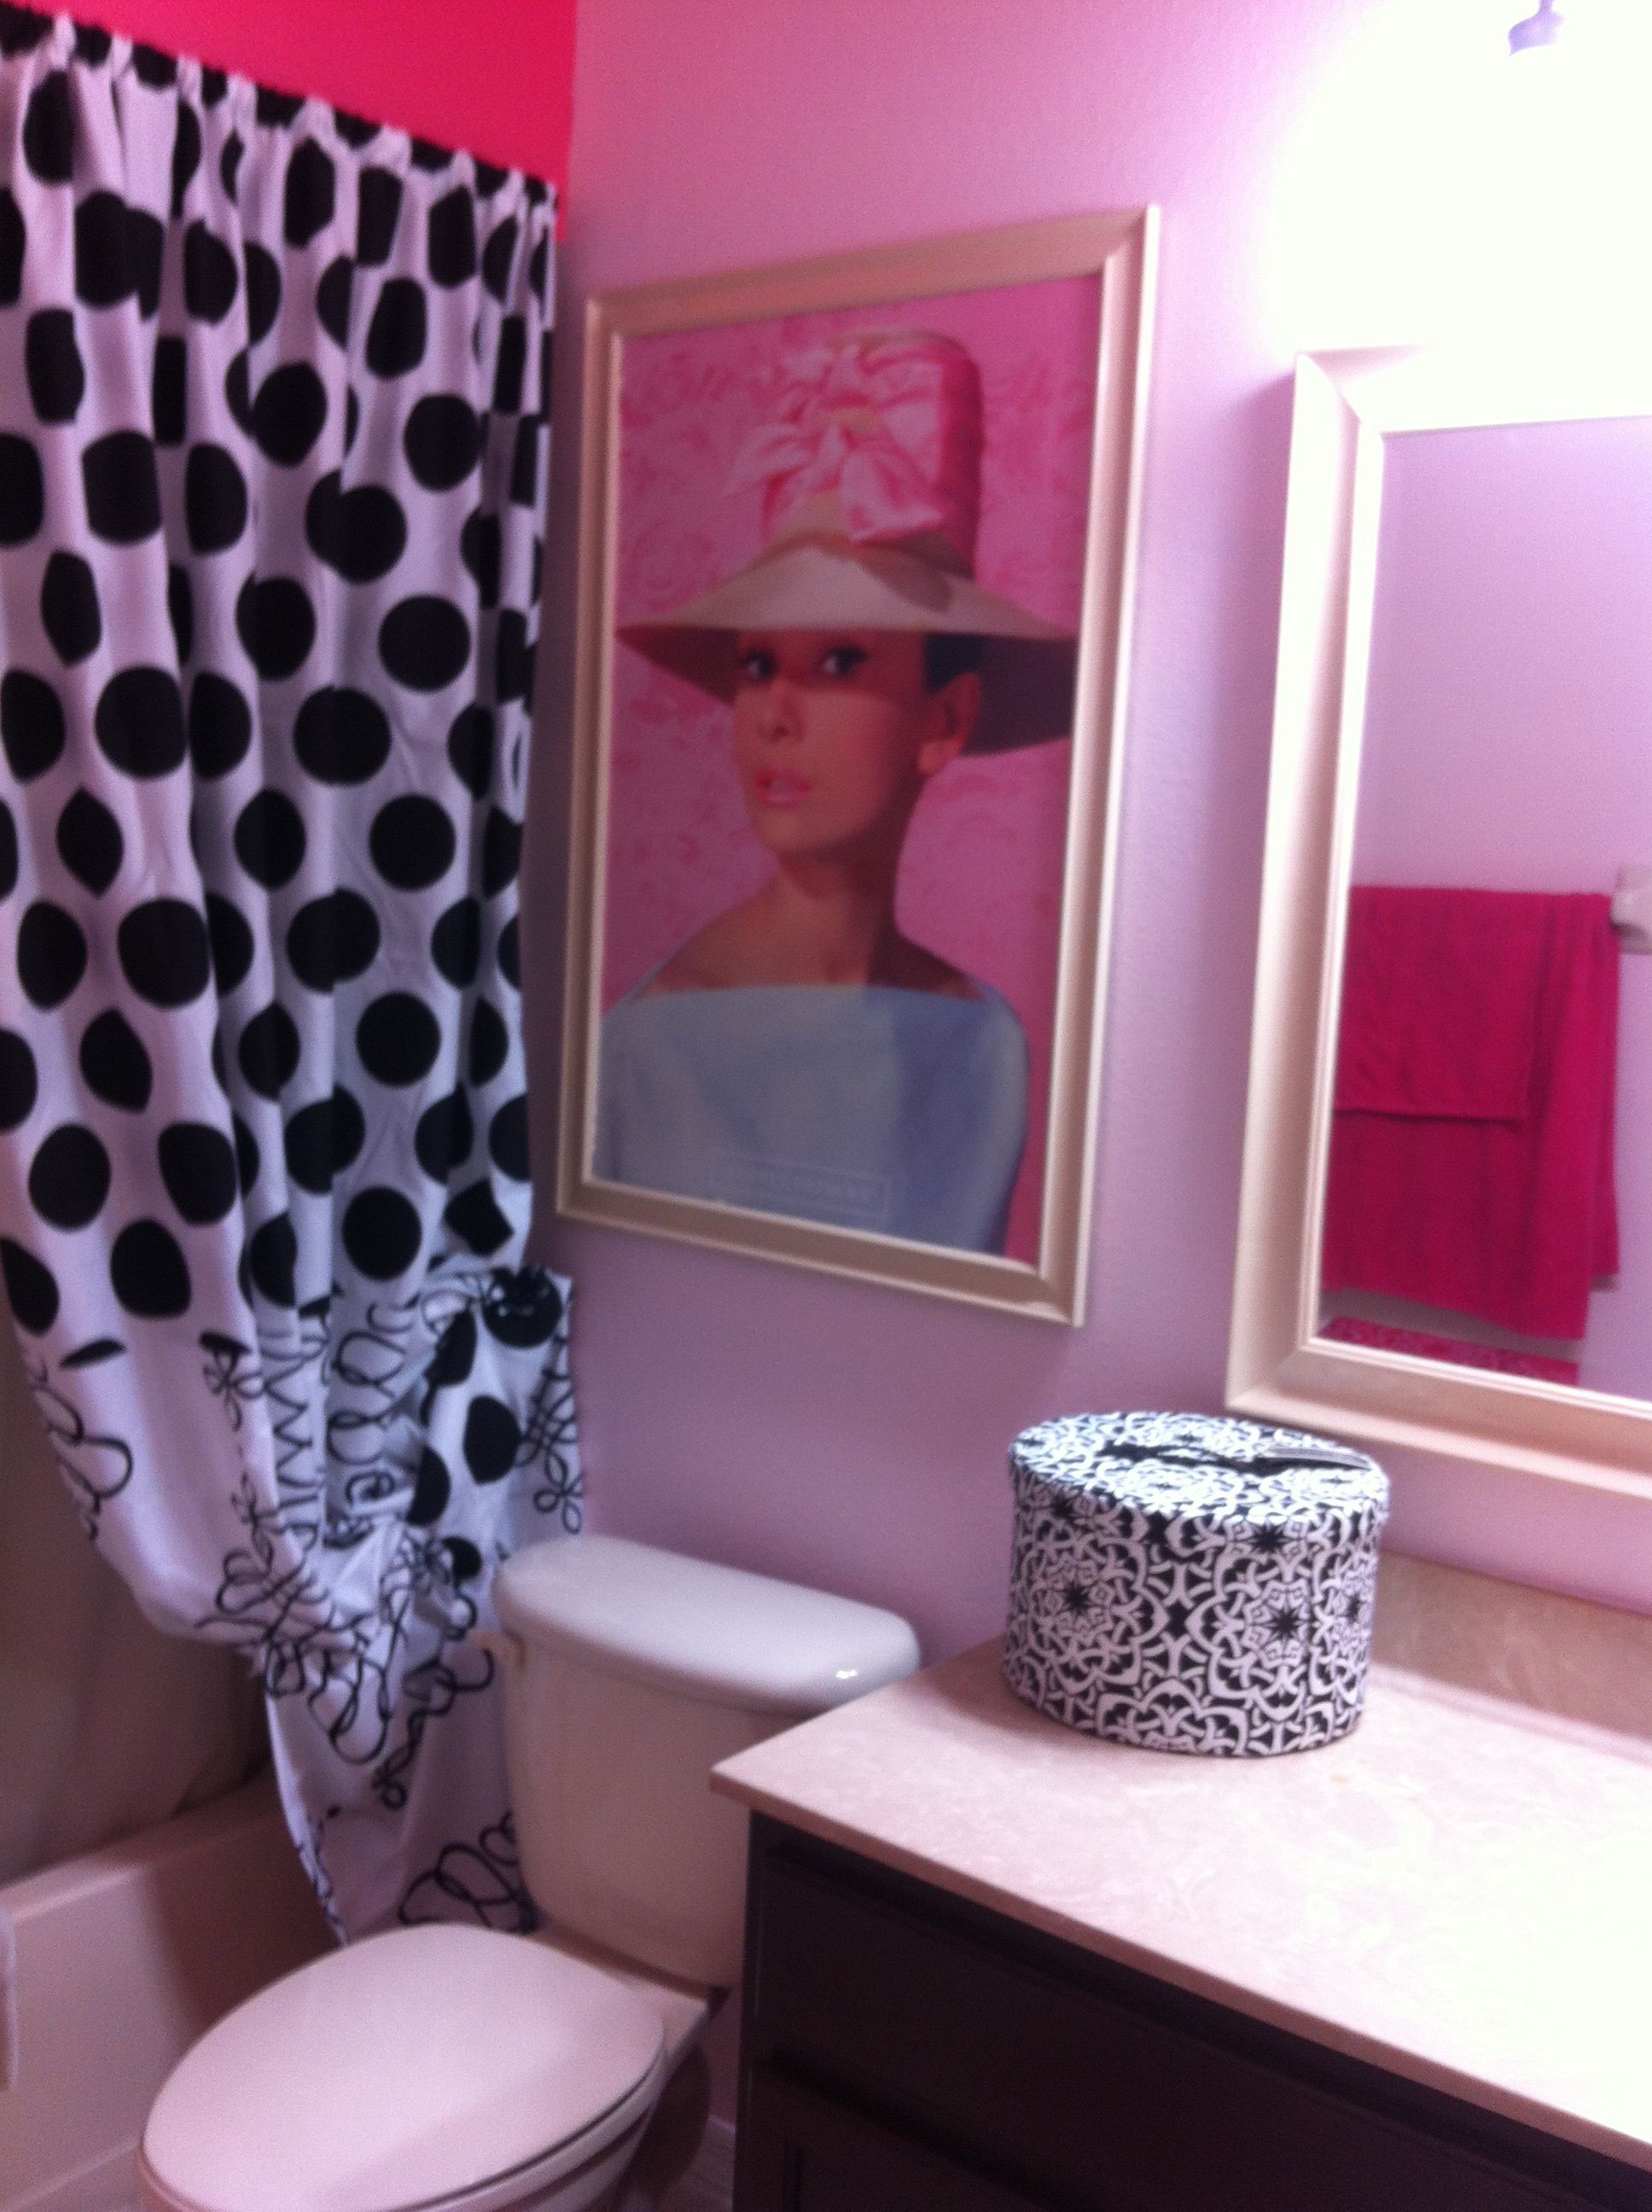 audrey hepburn theme girls bathroom pink , black and white poka